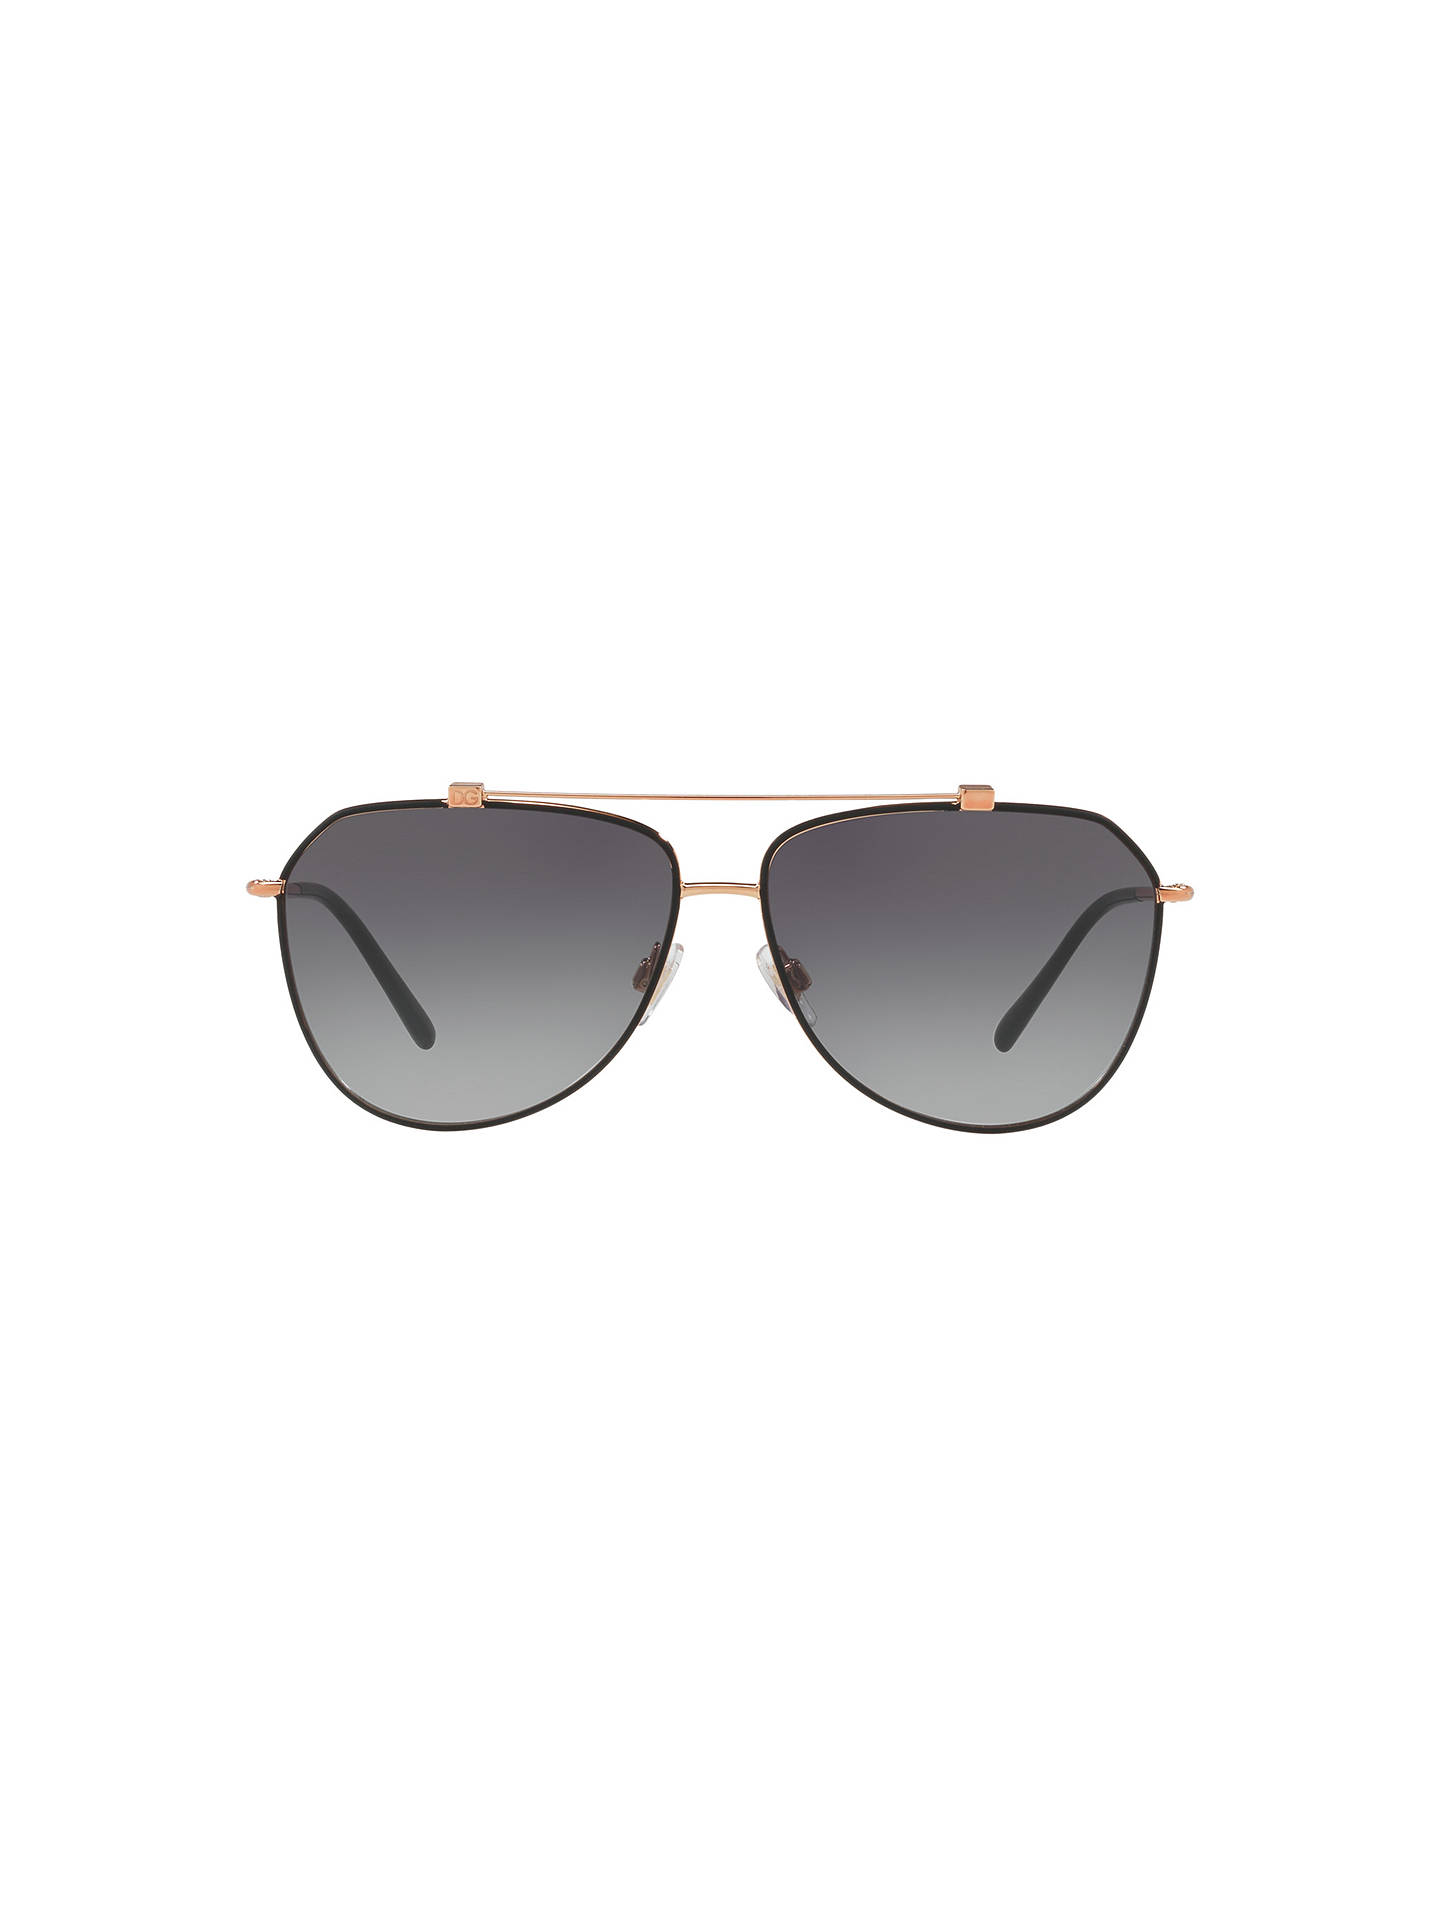 BuyDolce & Gabbana DG2190 Aviator Sunglasses, Gry Grd Online at johnlewis.com